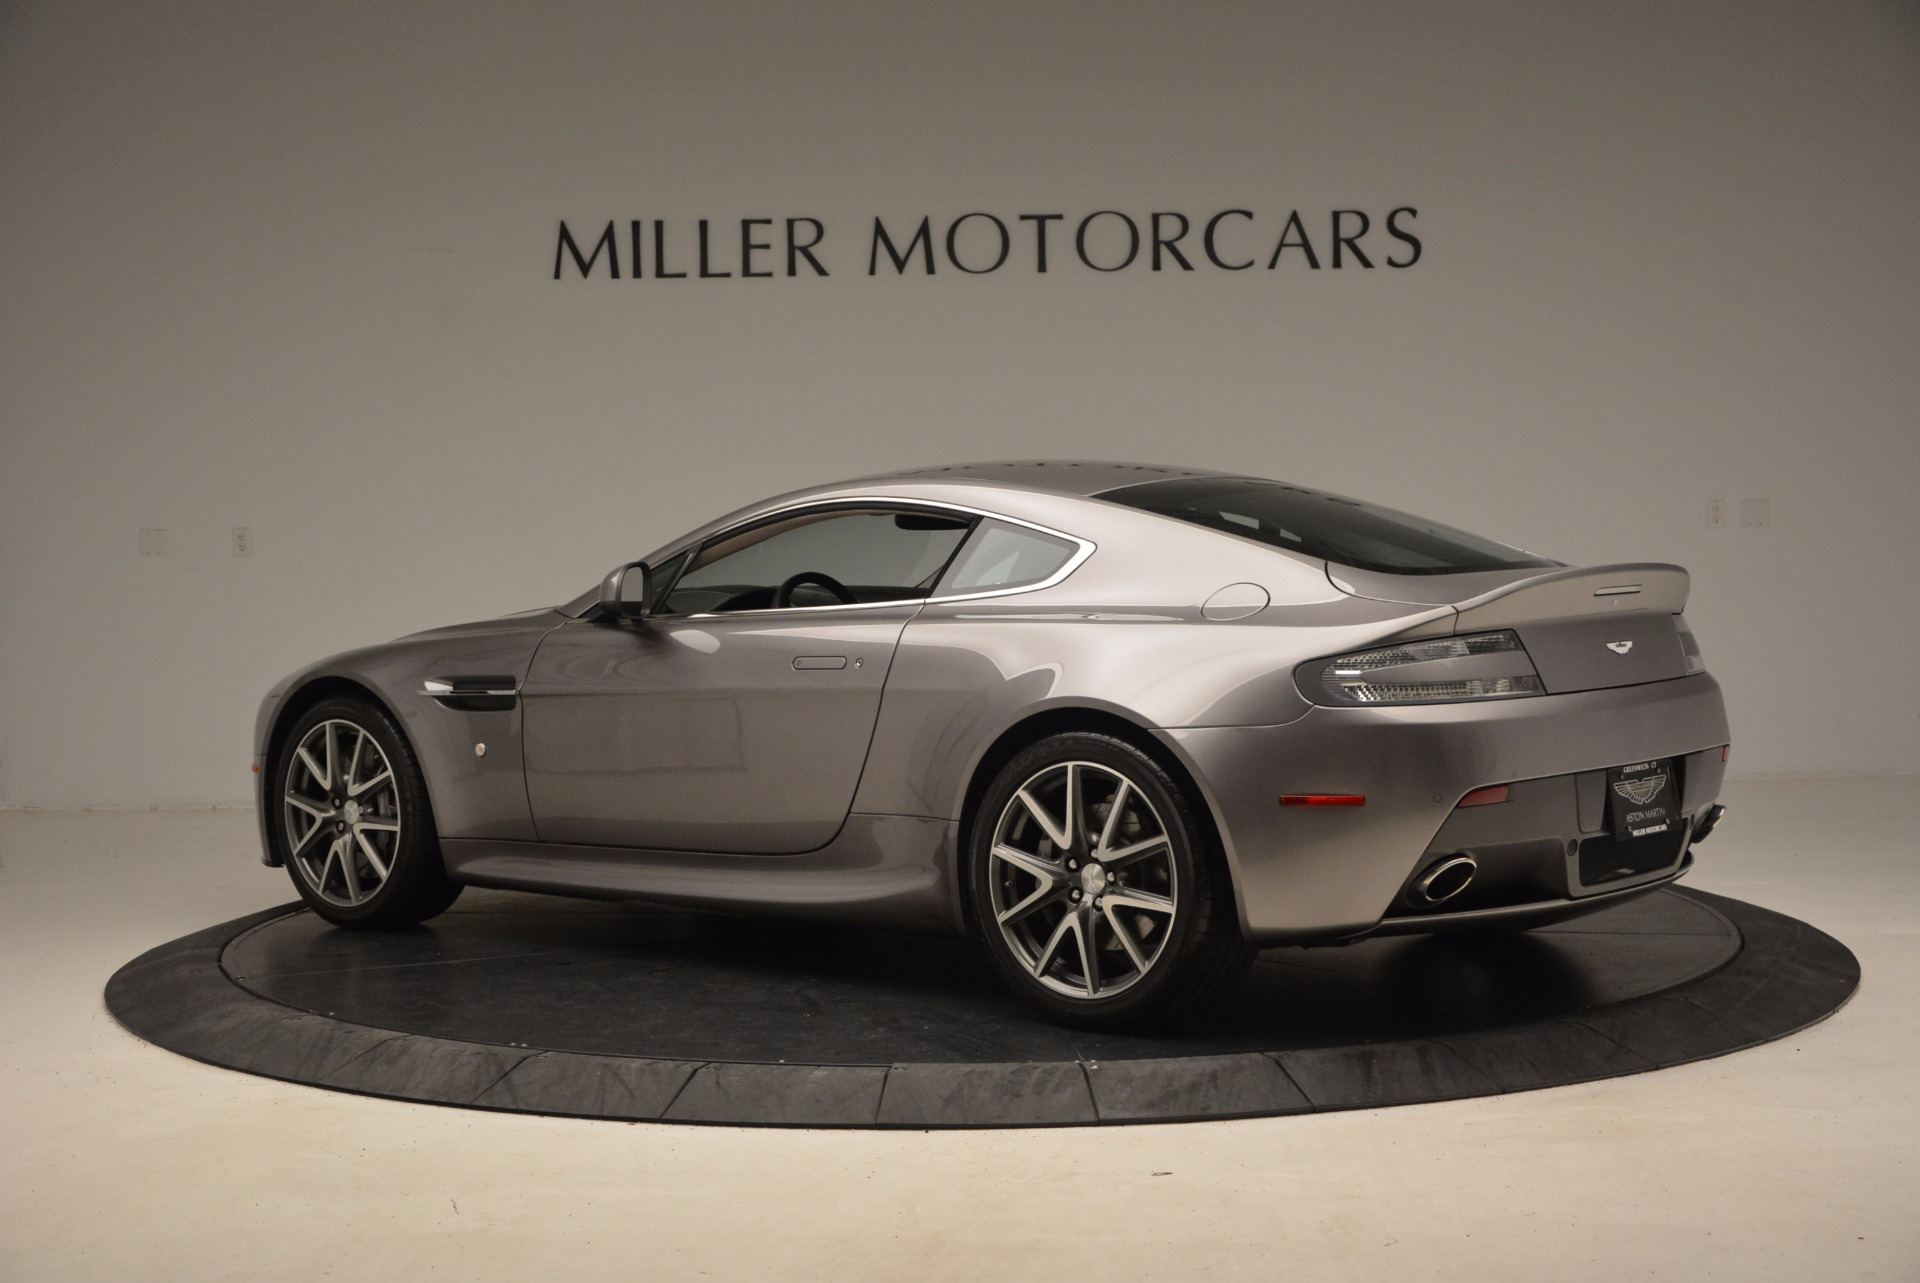 Used 2012 Aston Martin V8 Vantage  For Sale In Westport, CT 1497_p4